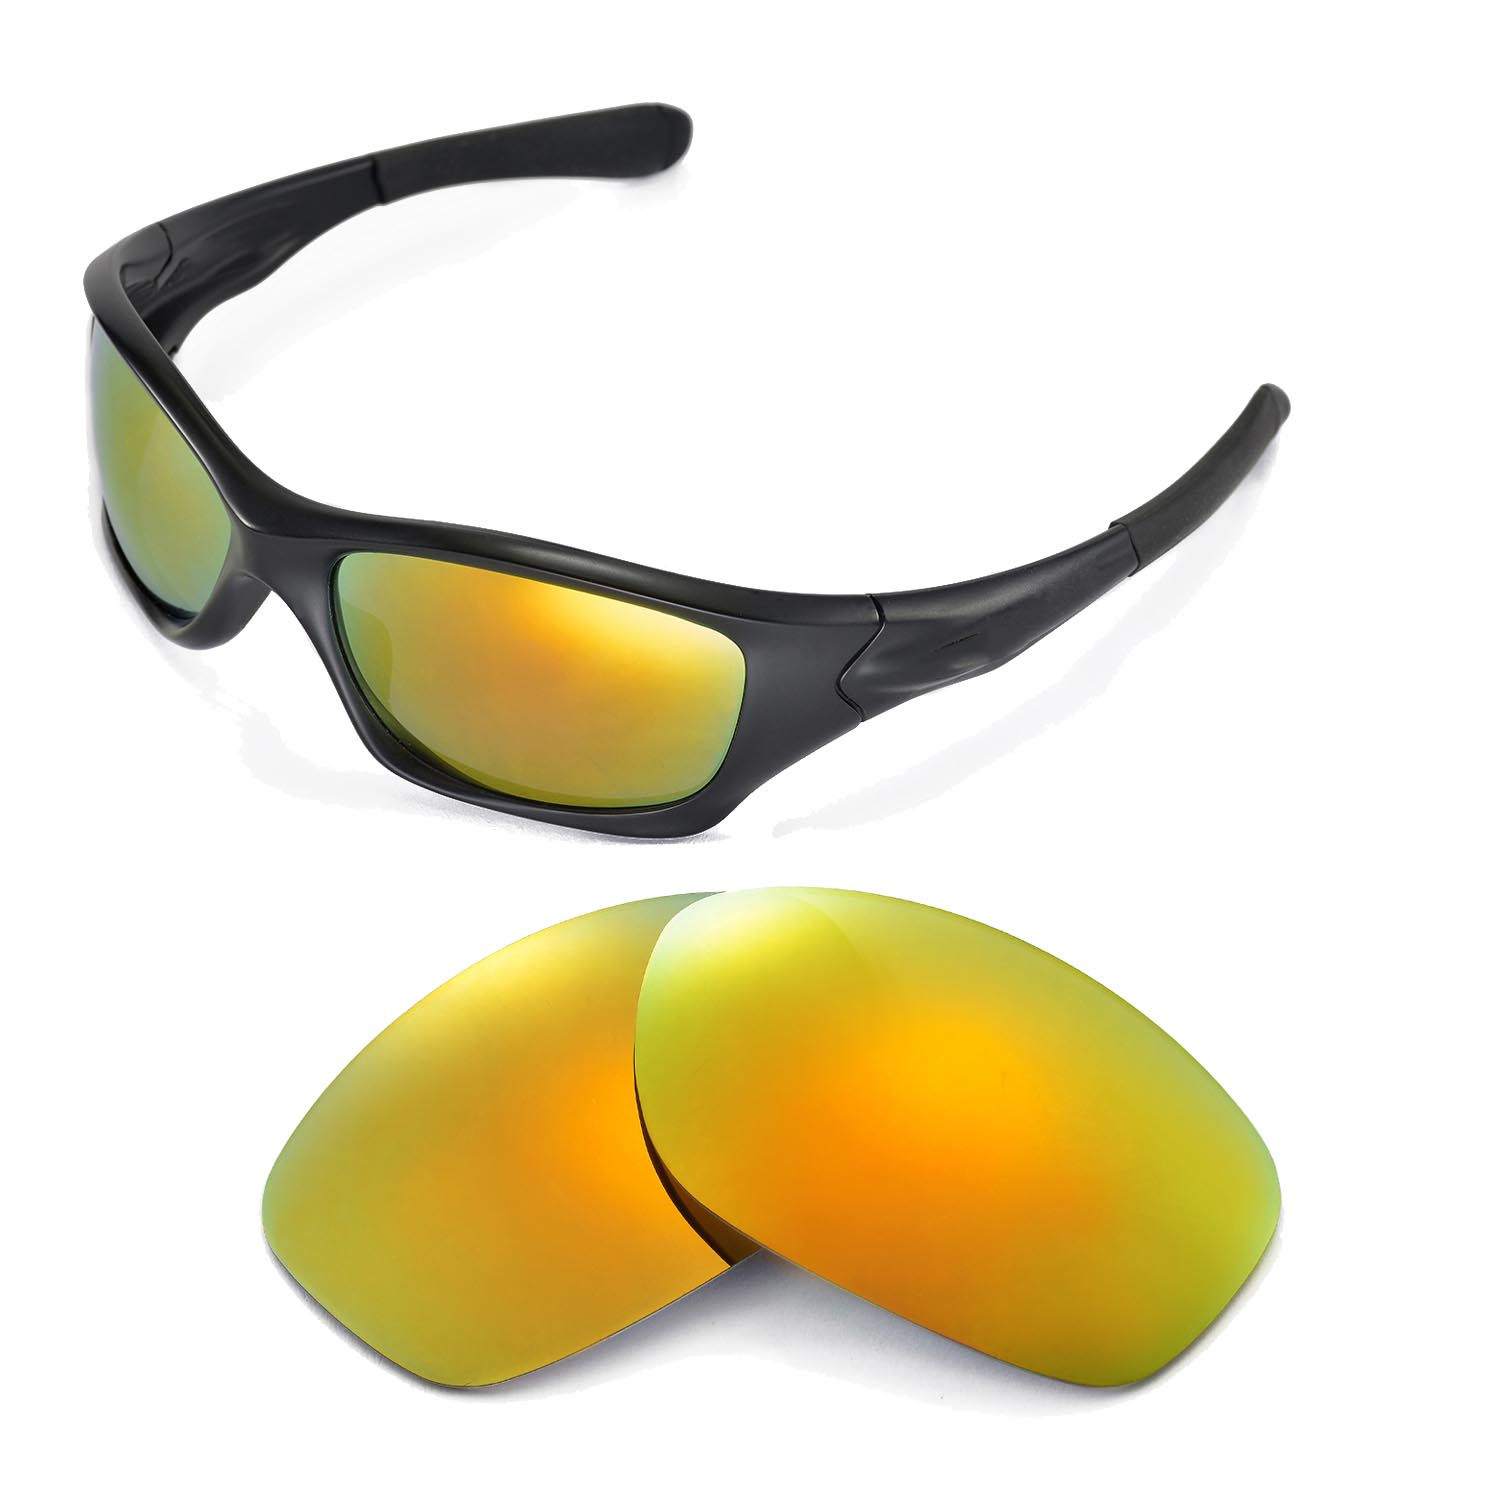 2b71762cbf Details about New Walleva Polarized 24K Gold Replacement Lenses For Oakley  Pit Bull Sunglasses